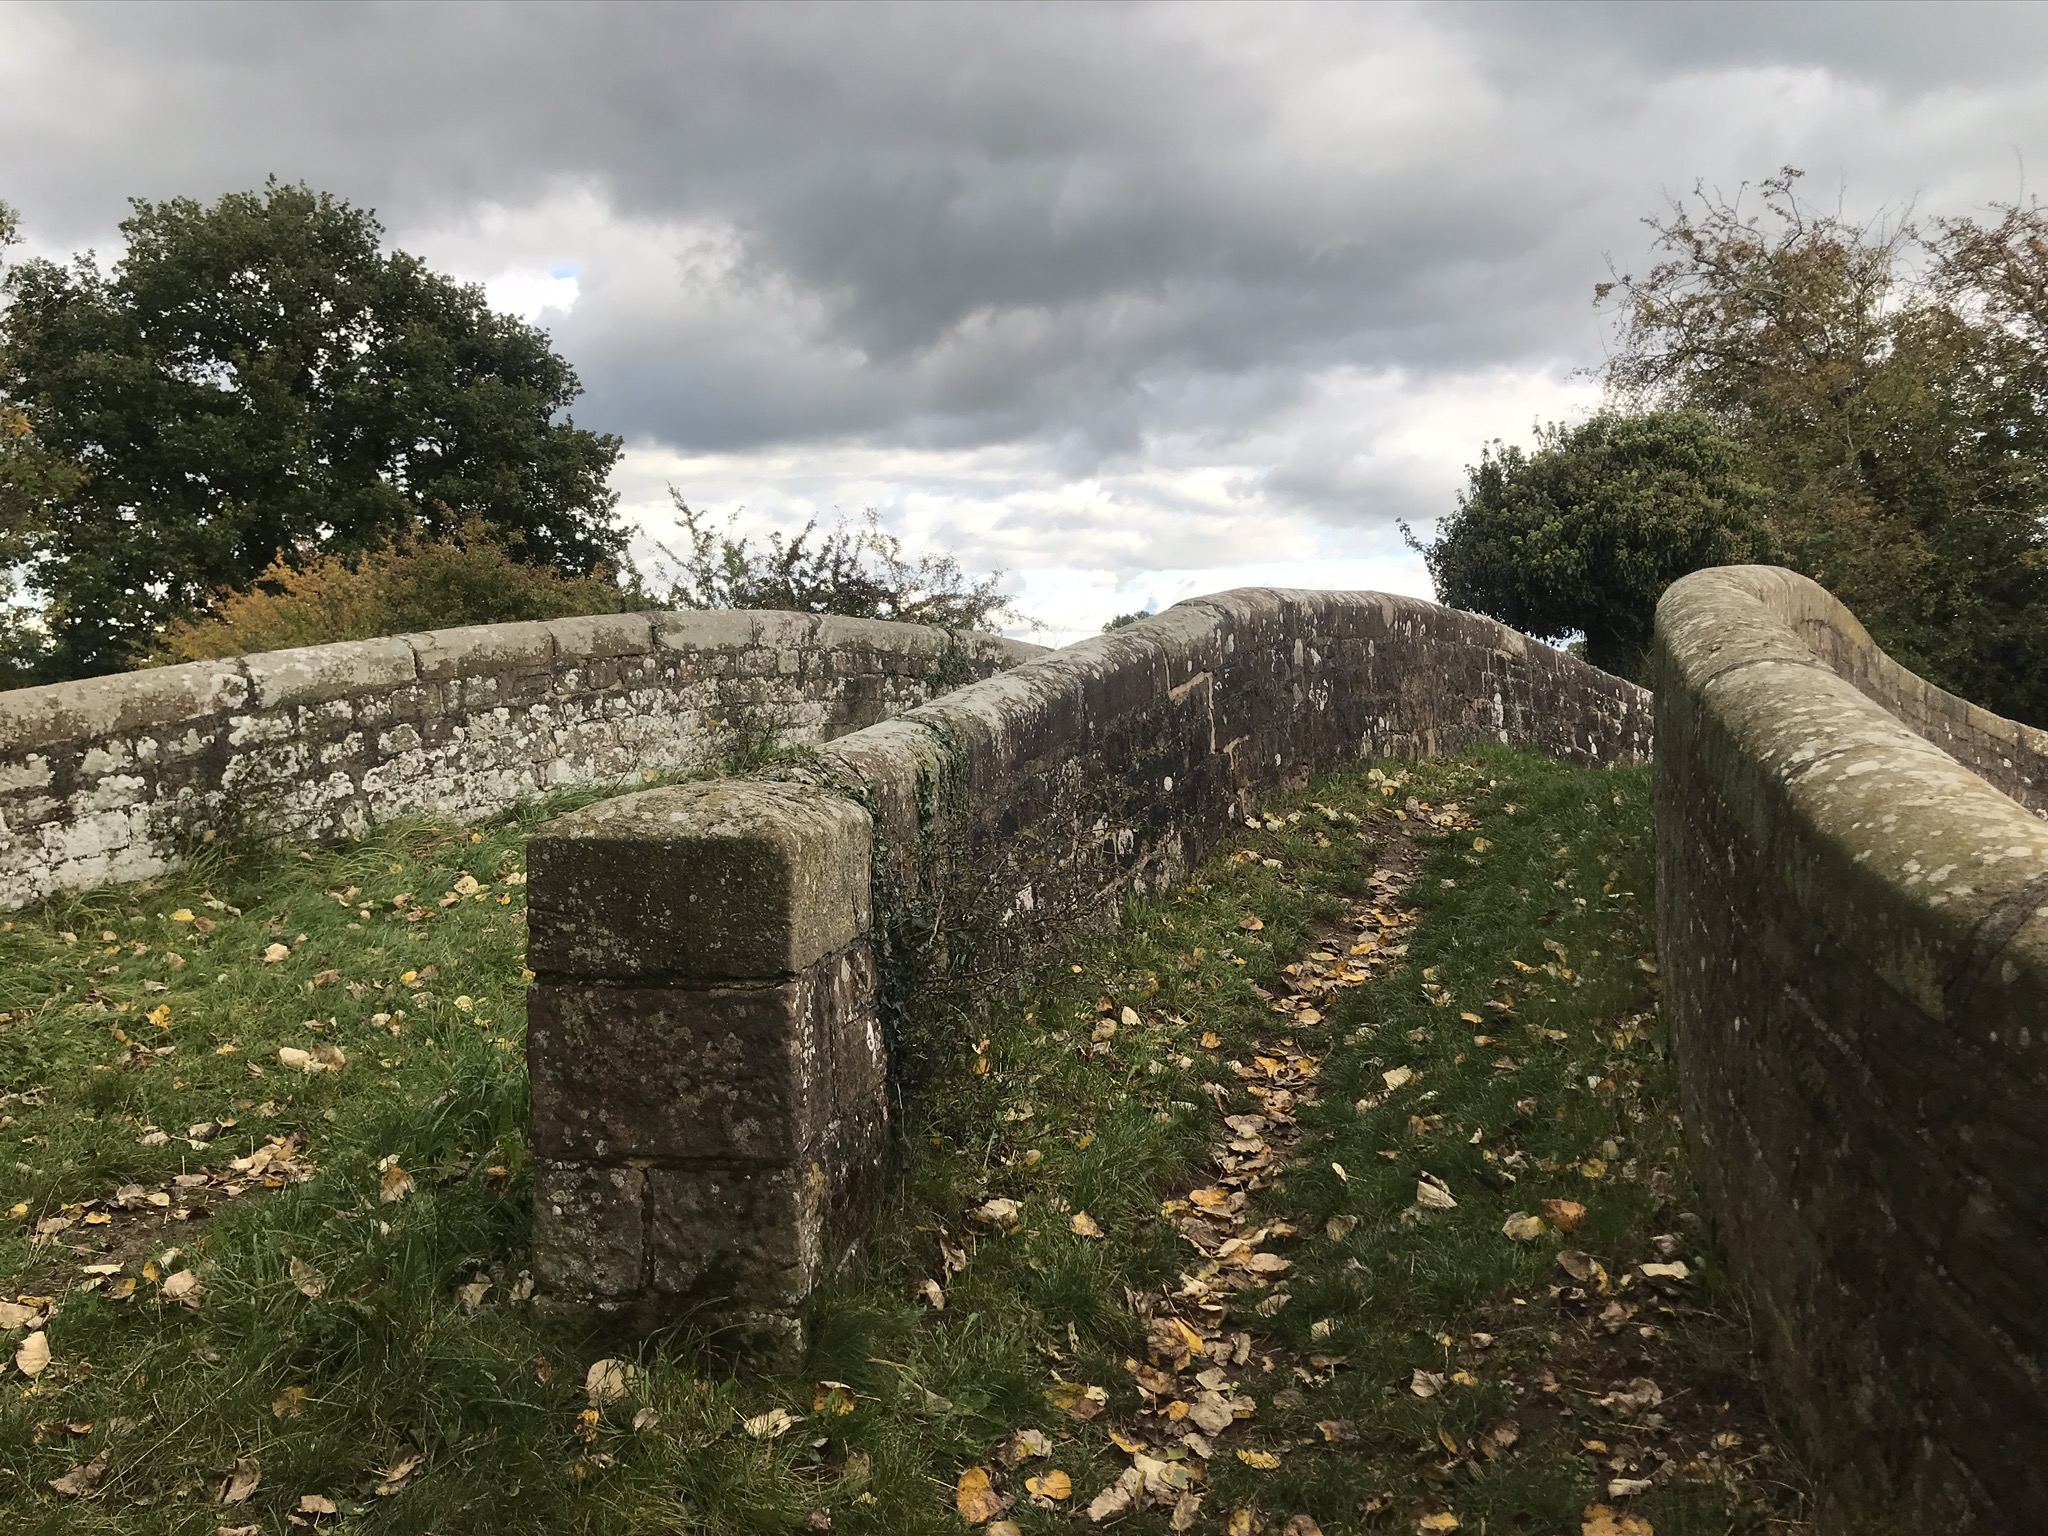 A view from the end of a canal bridge, there is a stone wall dividing the path on the bridge into two paths.